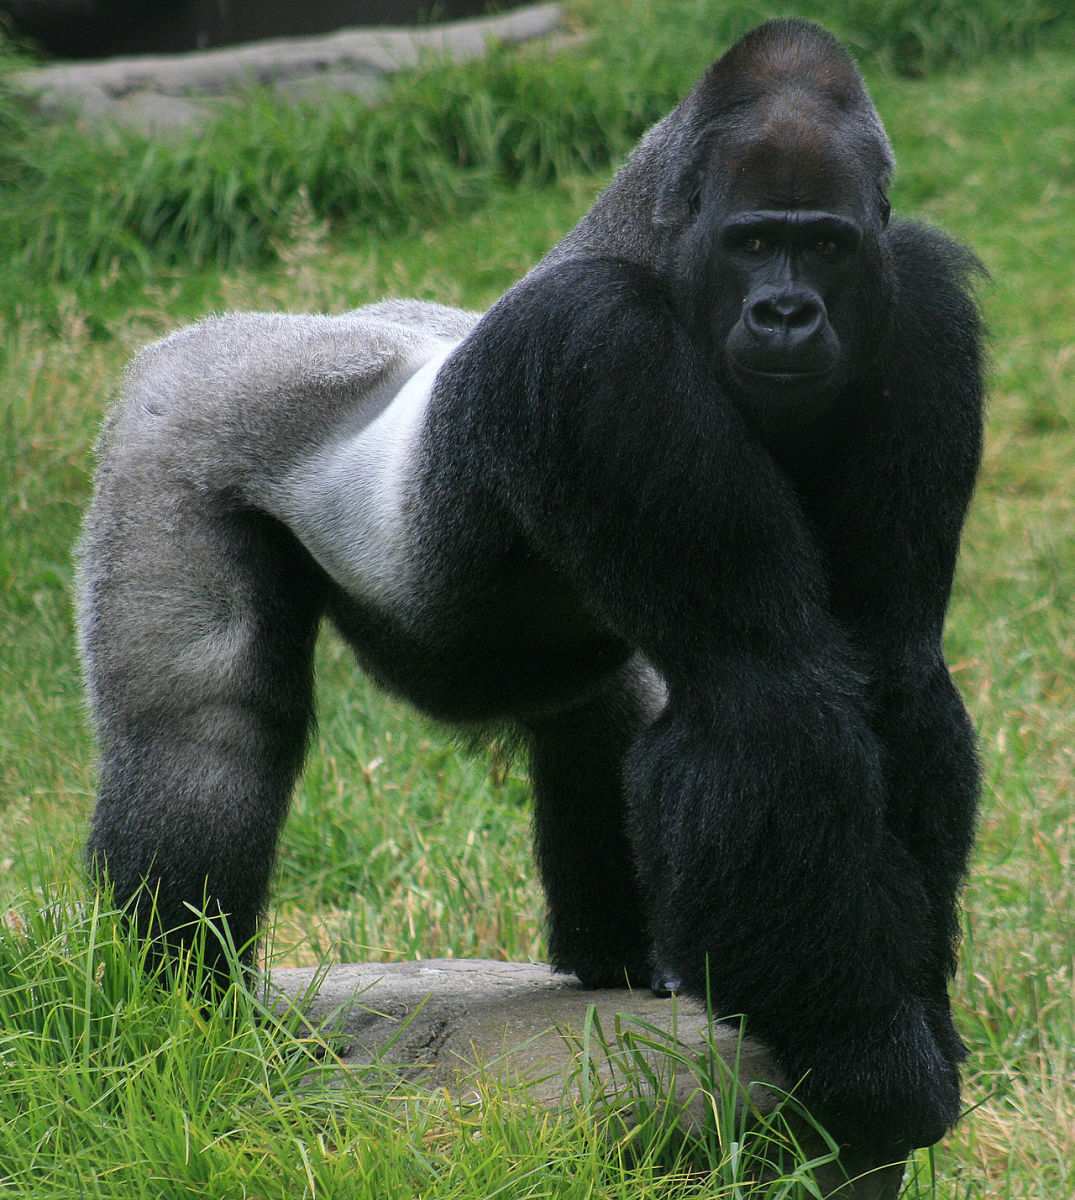 Mountain gorillas are currently an endangered species.